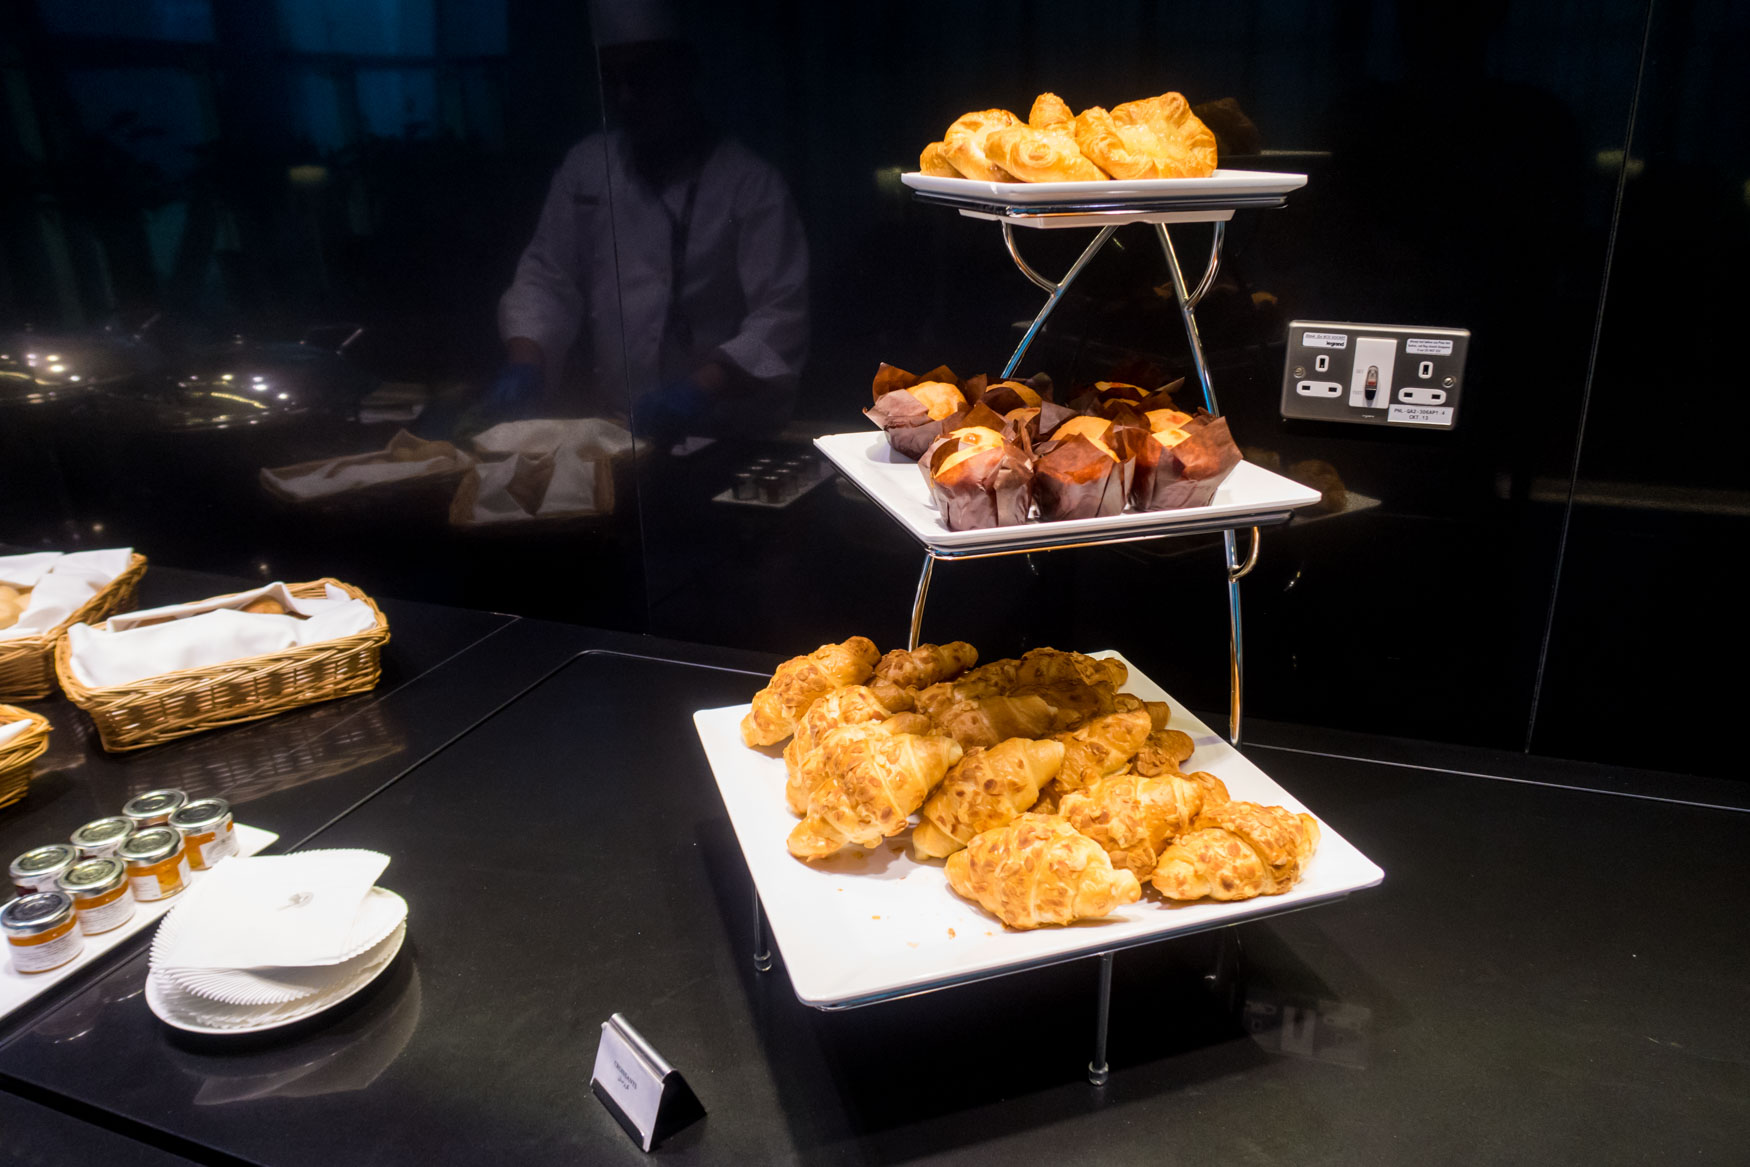 Qatar Airways Lounge Pastries